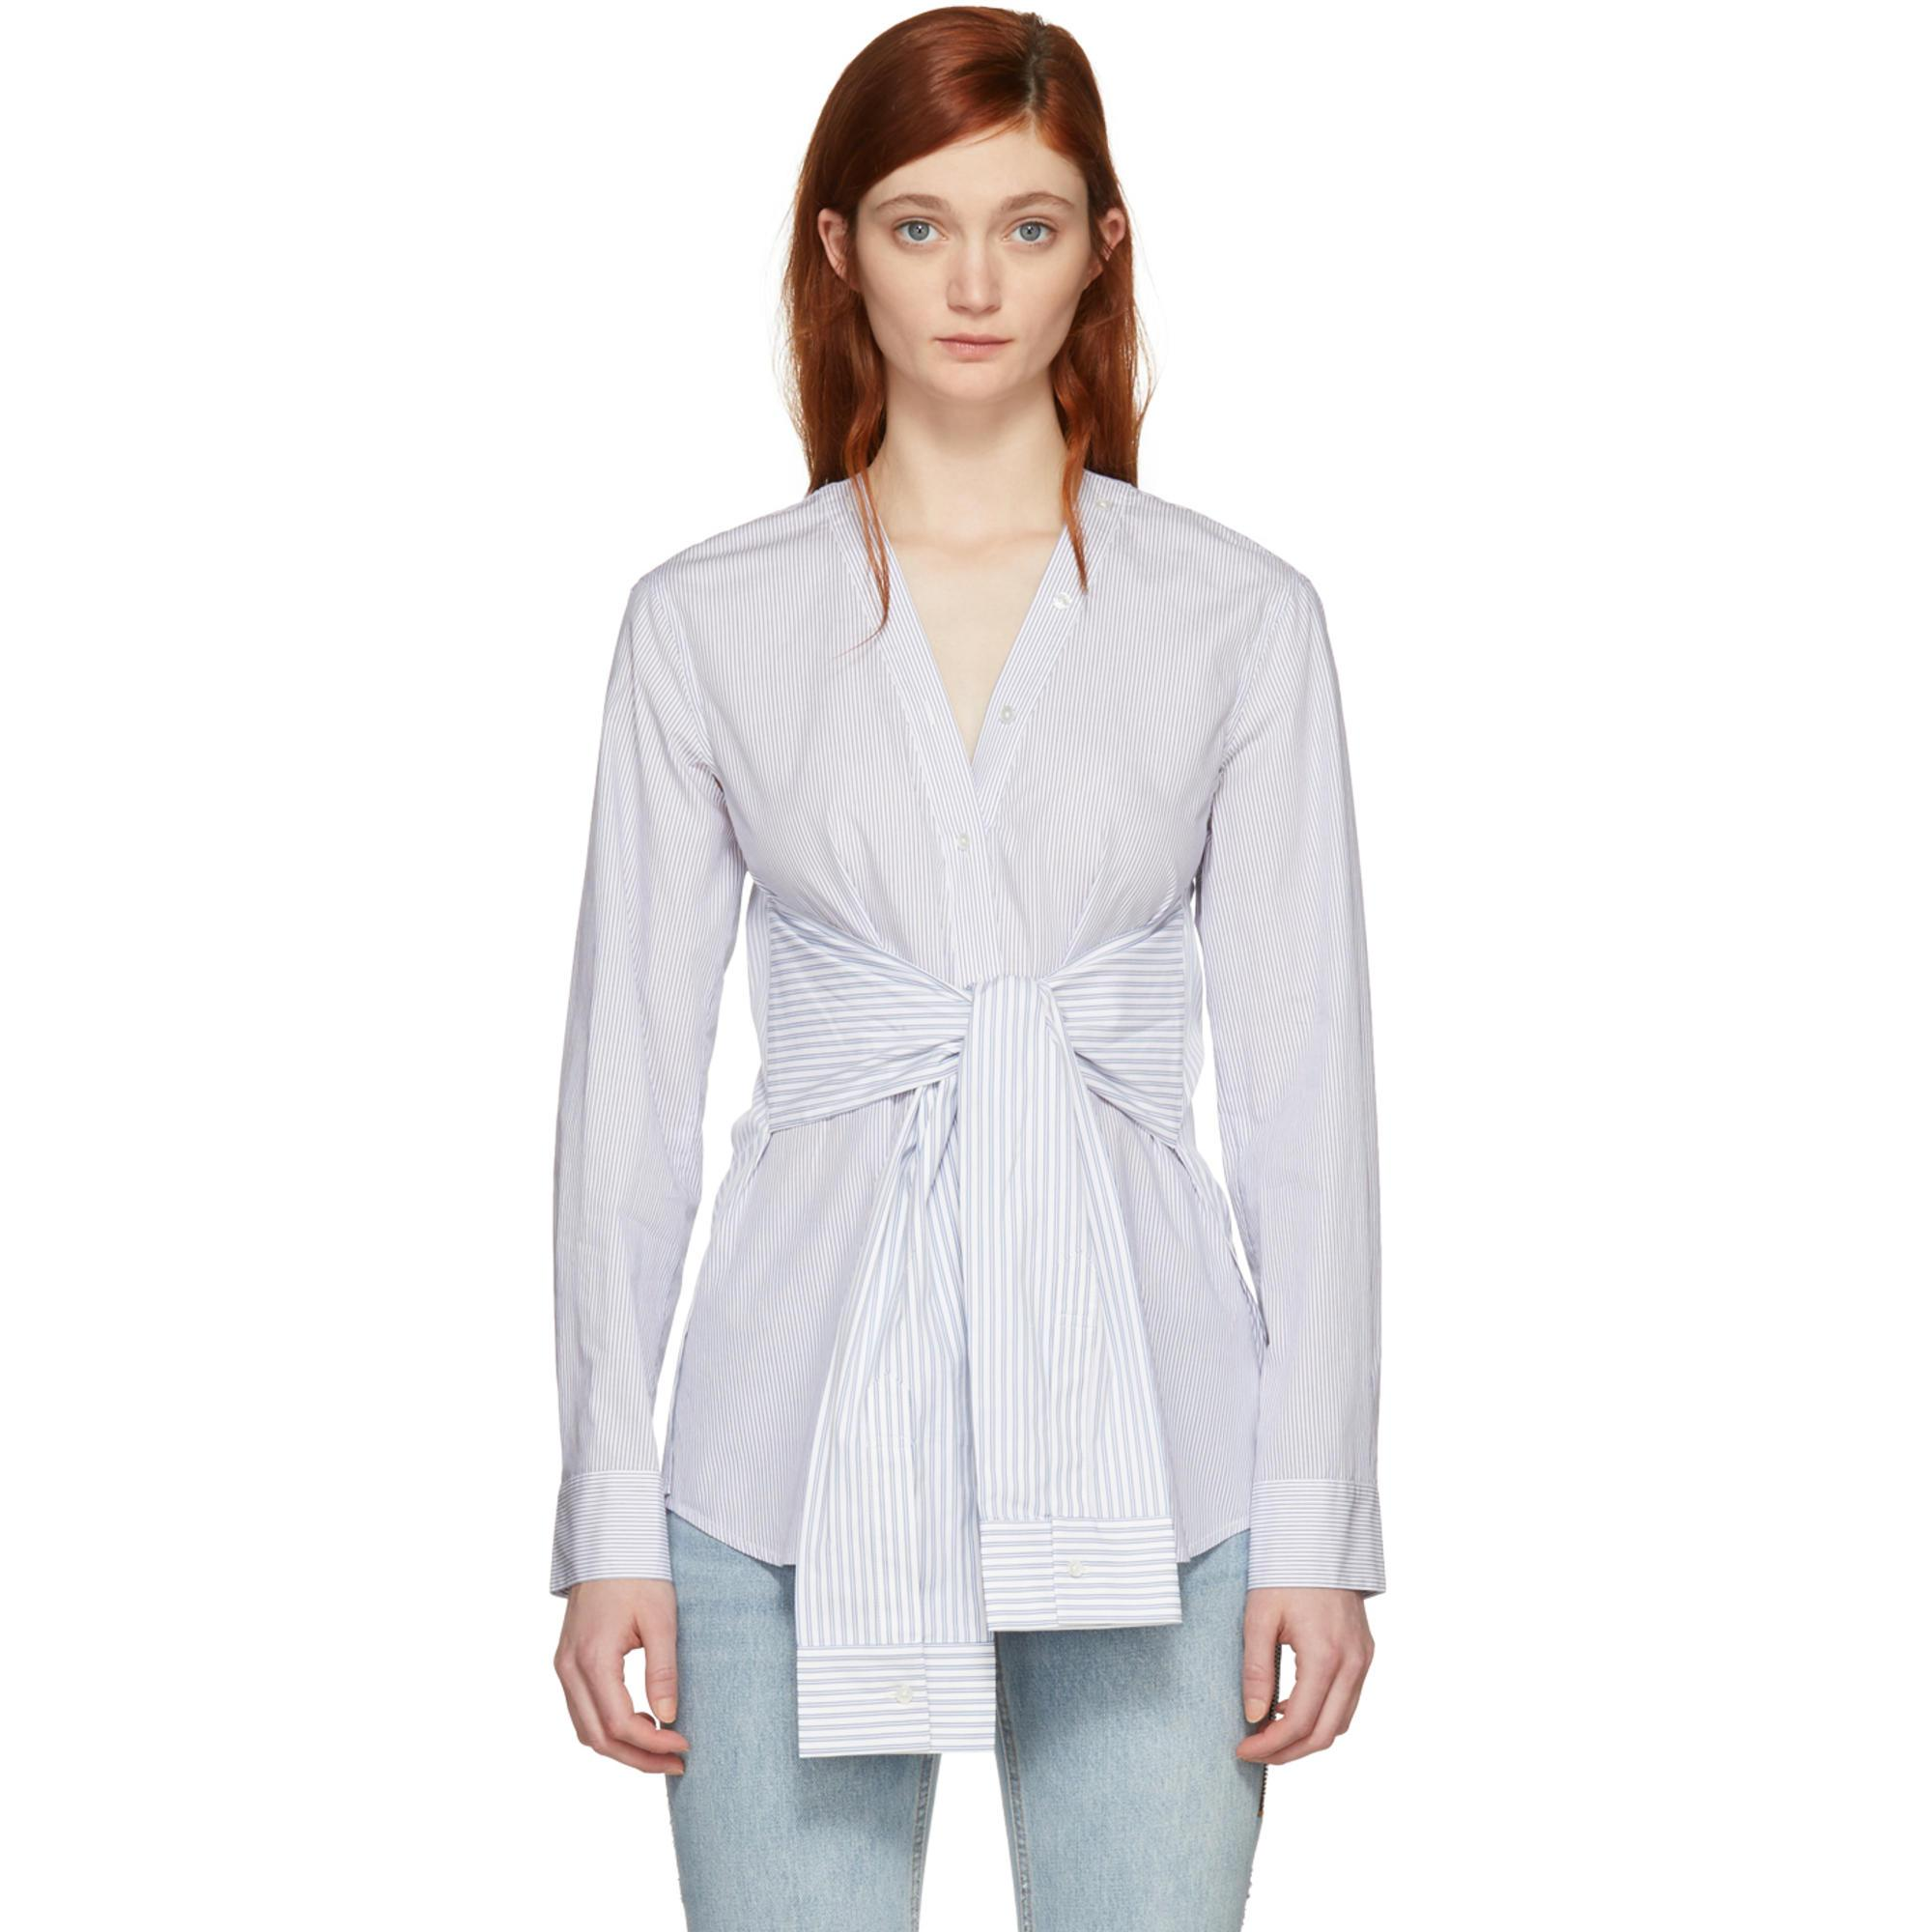 Sale Pre Order White and Blue Multi Stripe Tie Shirt Alexander Wang Cheap 2018 New Very Cheap Online Free Shipping Cheapest Shop Offer Sale Online Jt0icUCj